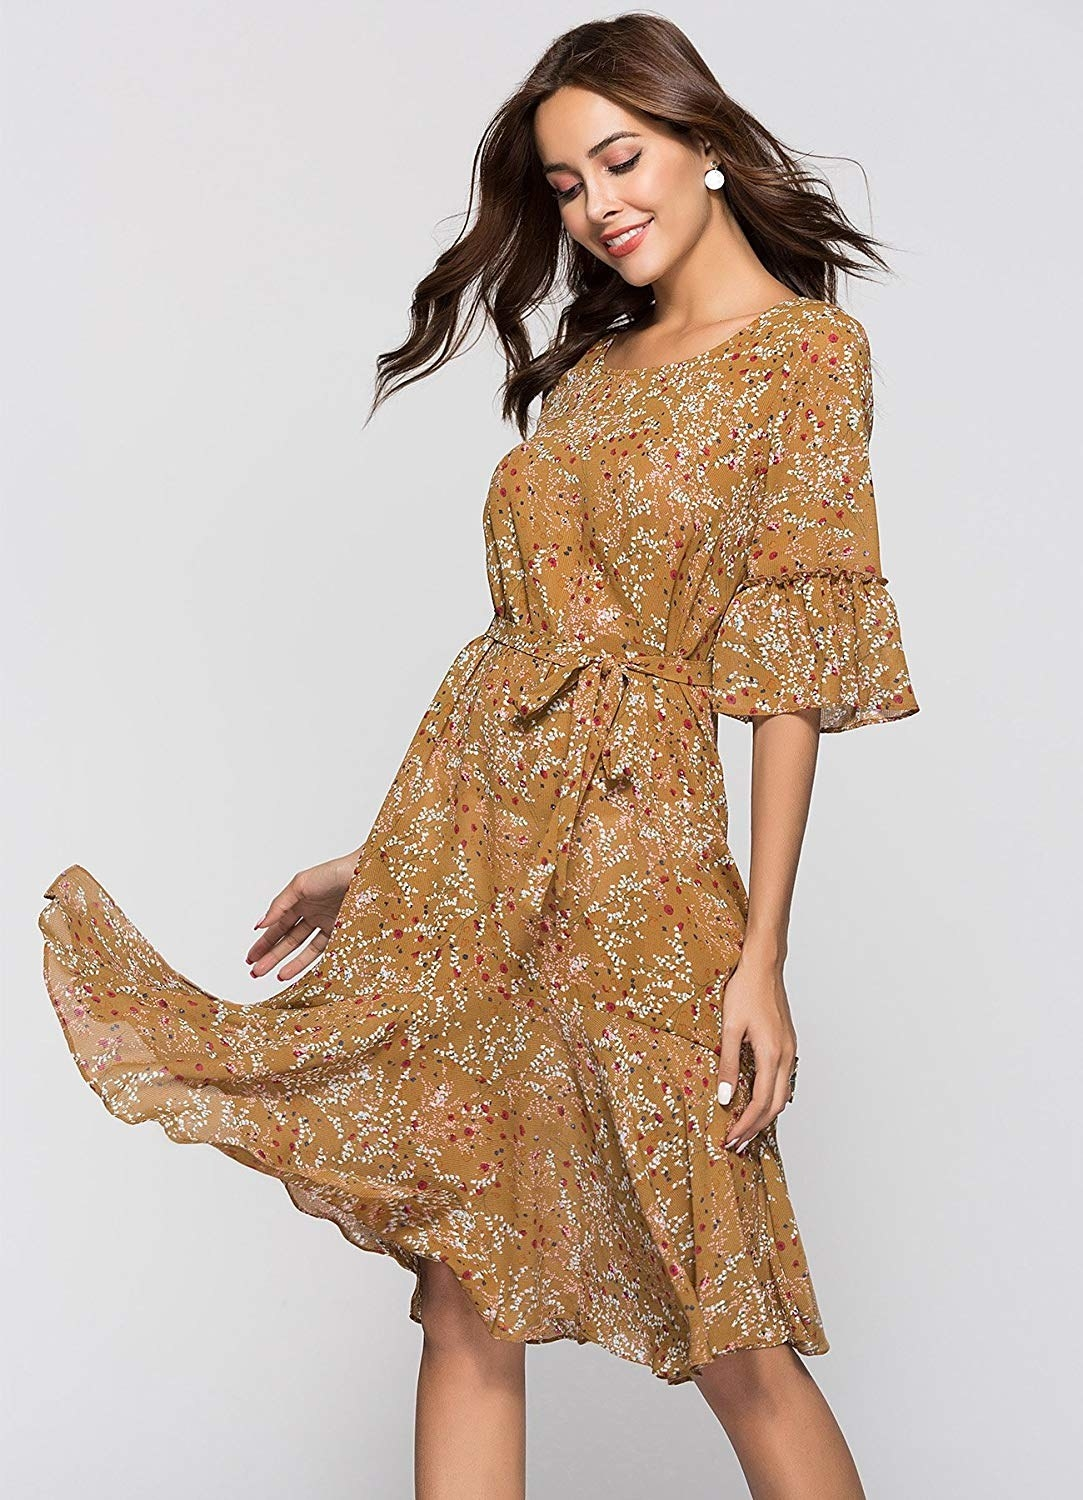 model wearing light brown floral print dress